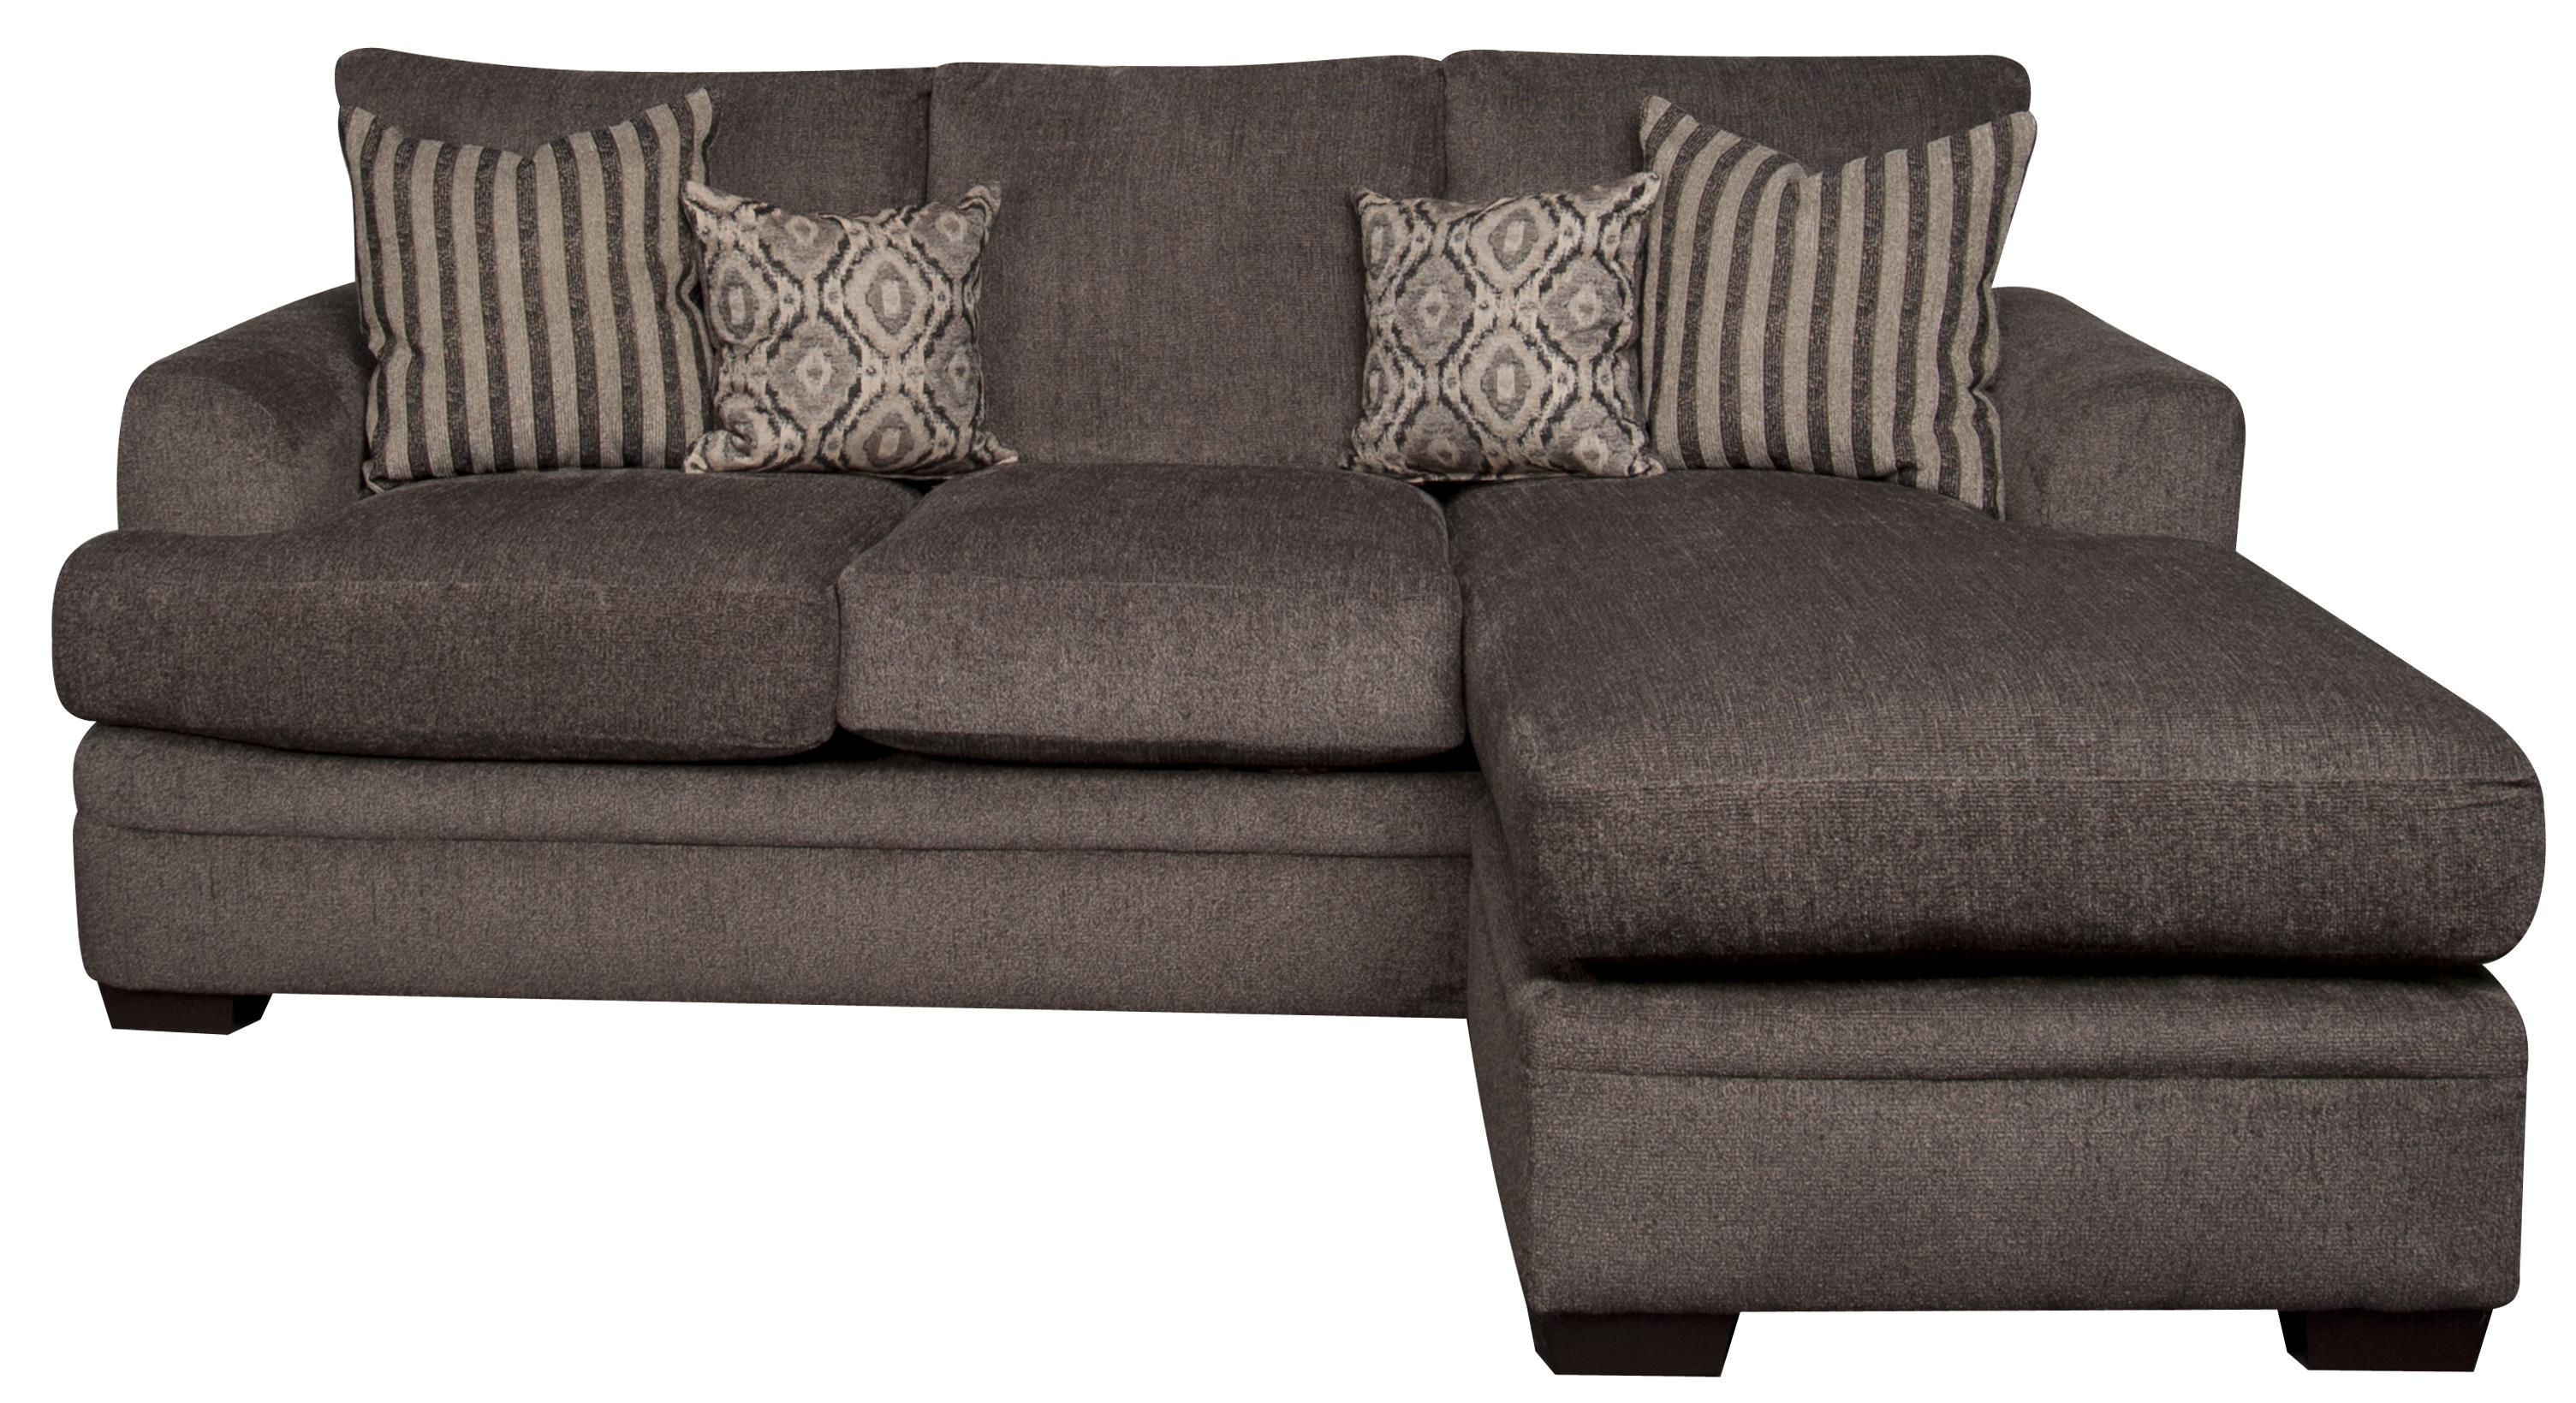 Eva Eva Sofa Chaise with Accent Pillows by Peak Living at Morris Home